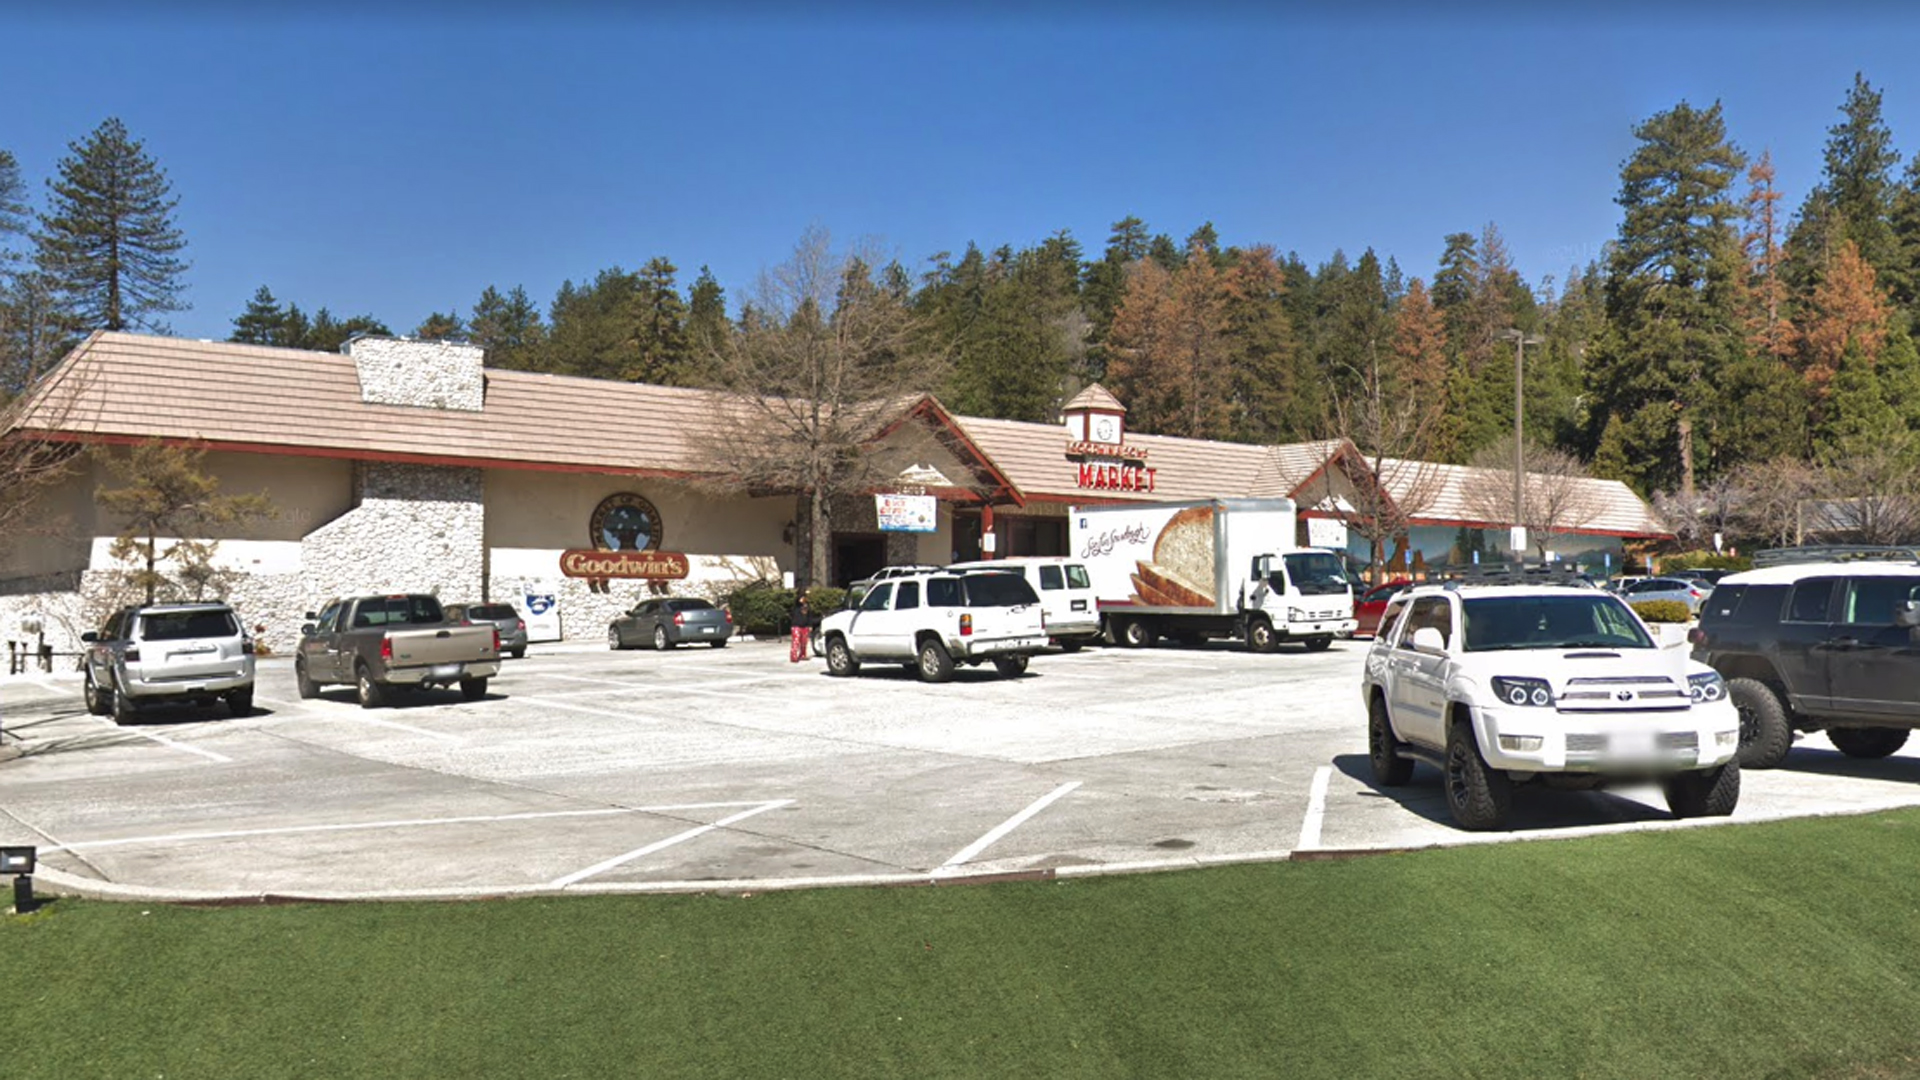 Goodwin & Sons Market, 24089 Lake Gregory Drive in Crestline, as pictured in a Google Street View image in March of 2019.